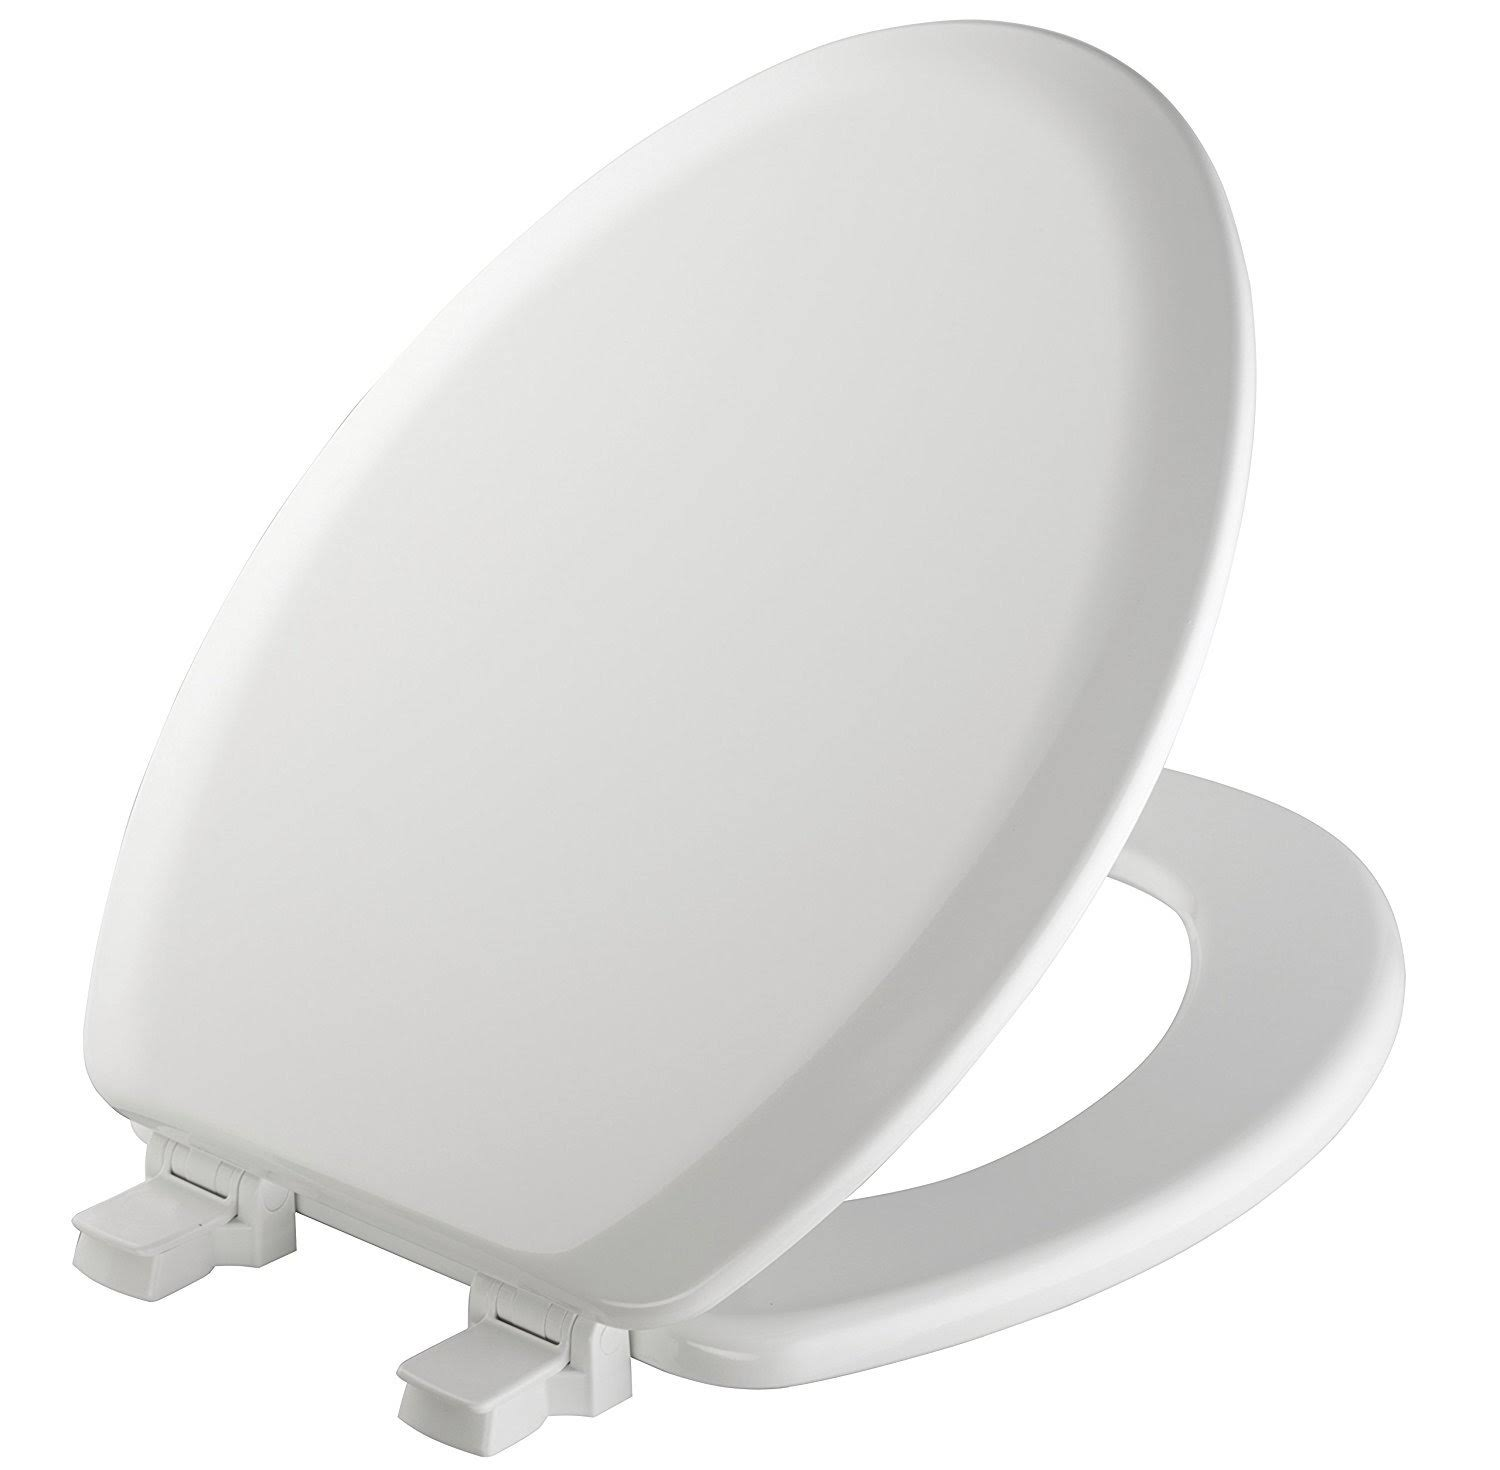 Bemis Toilet Seat - Elongated, White Wood